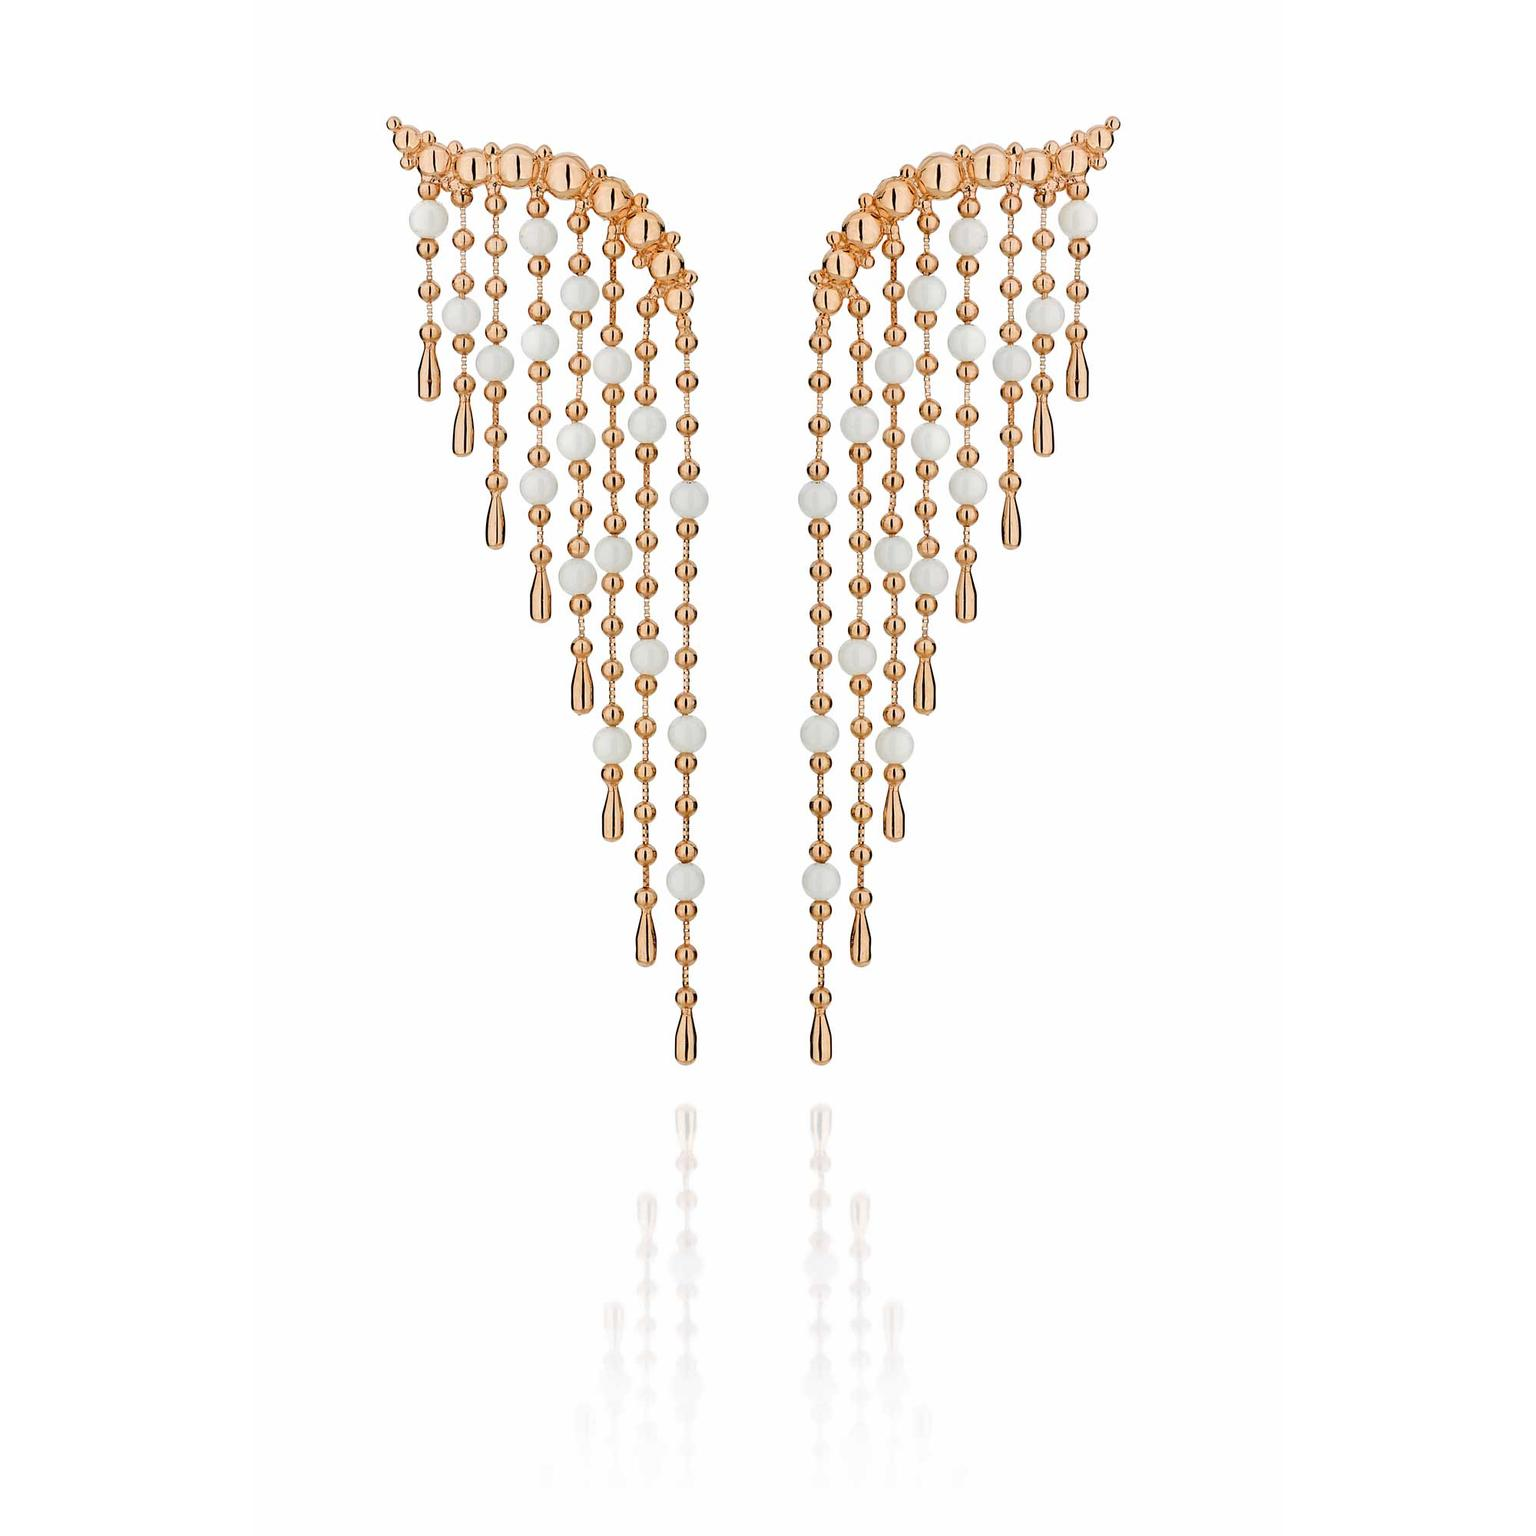 Carla Amorim Singing in the Rain earrings